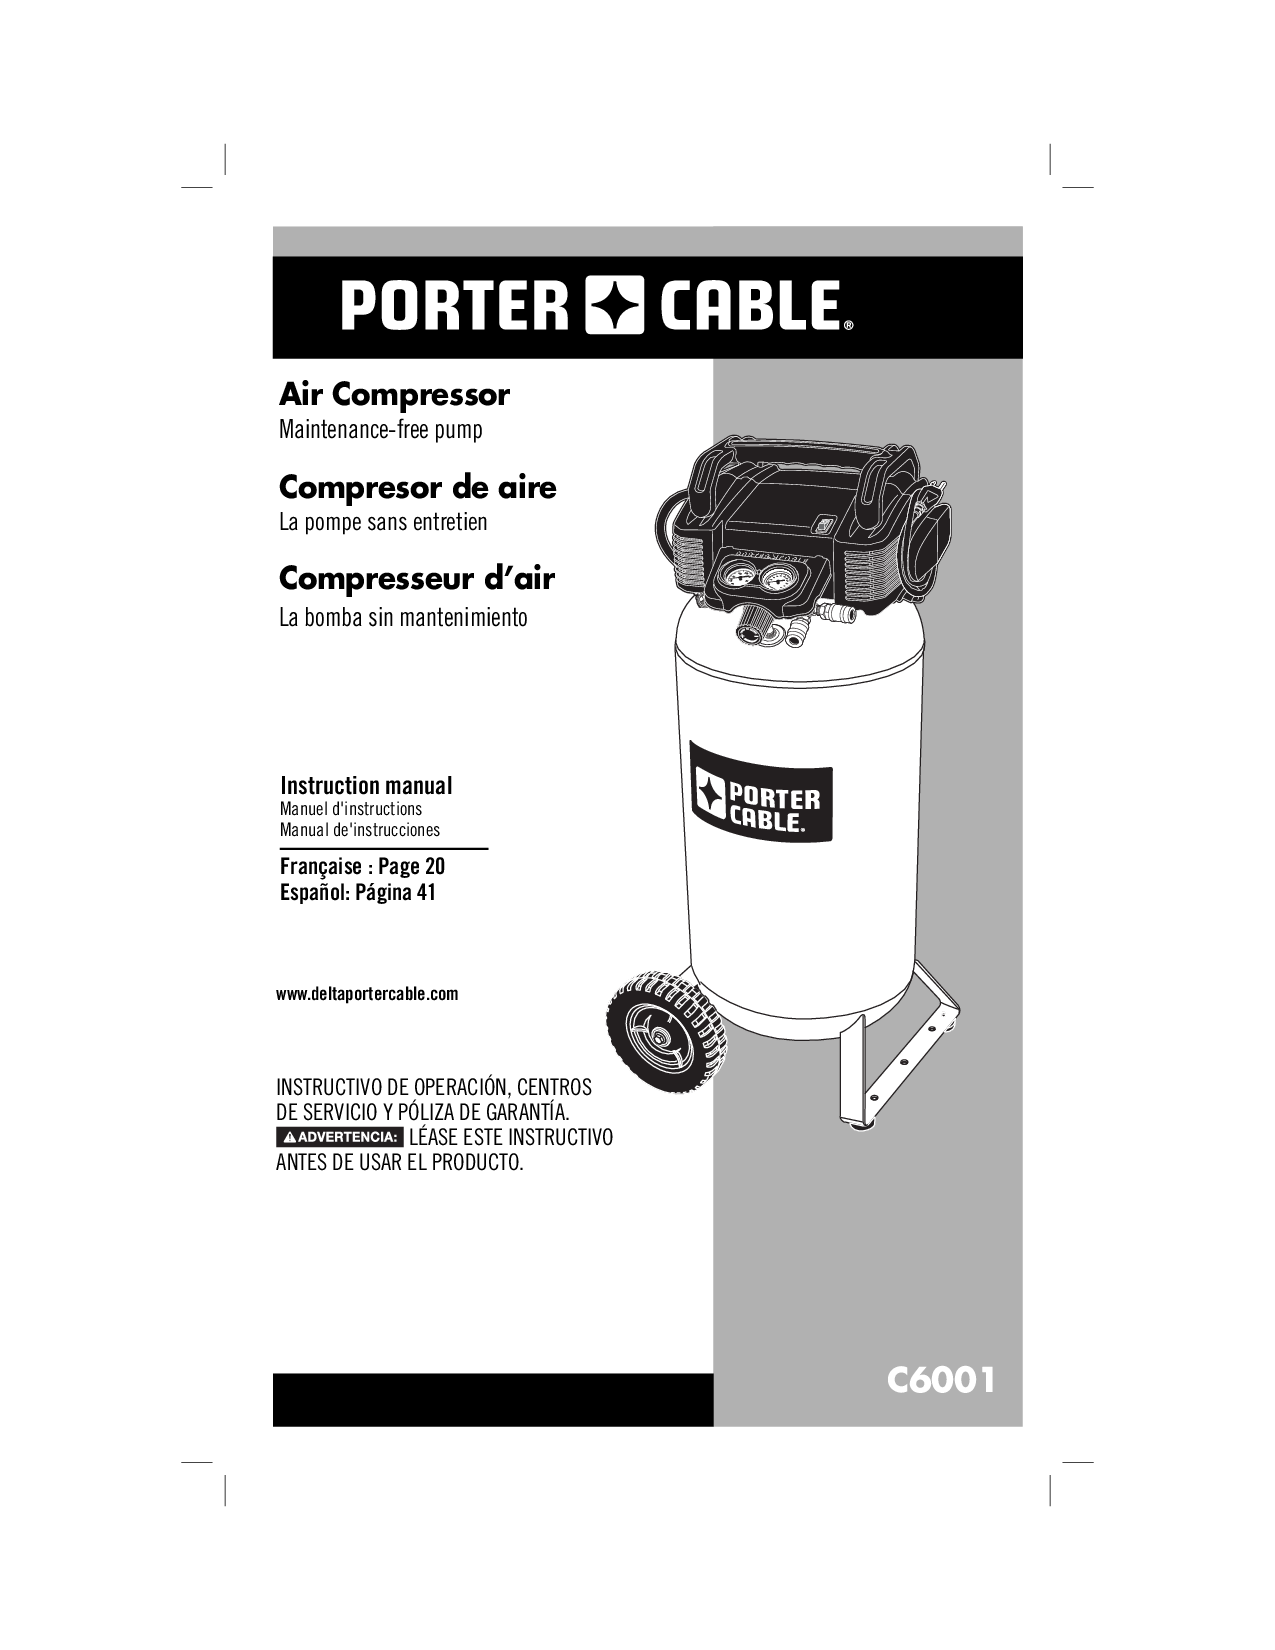 Porter Cable C6001 N078948 User Manual